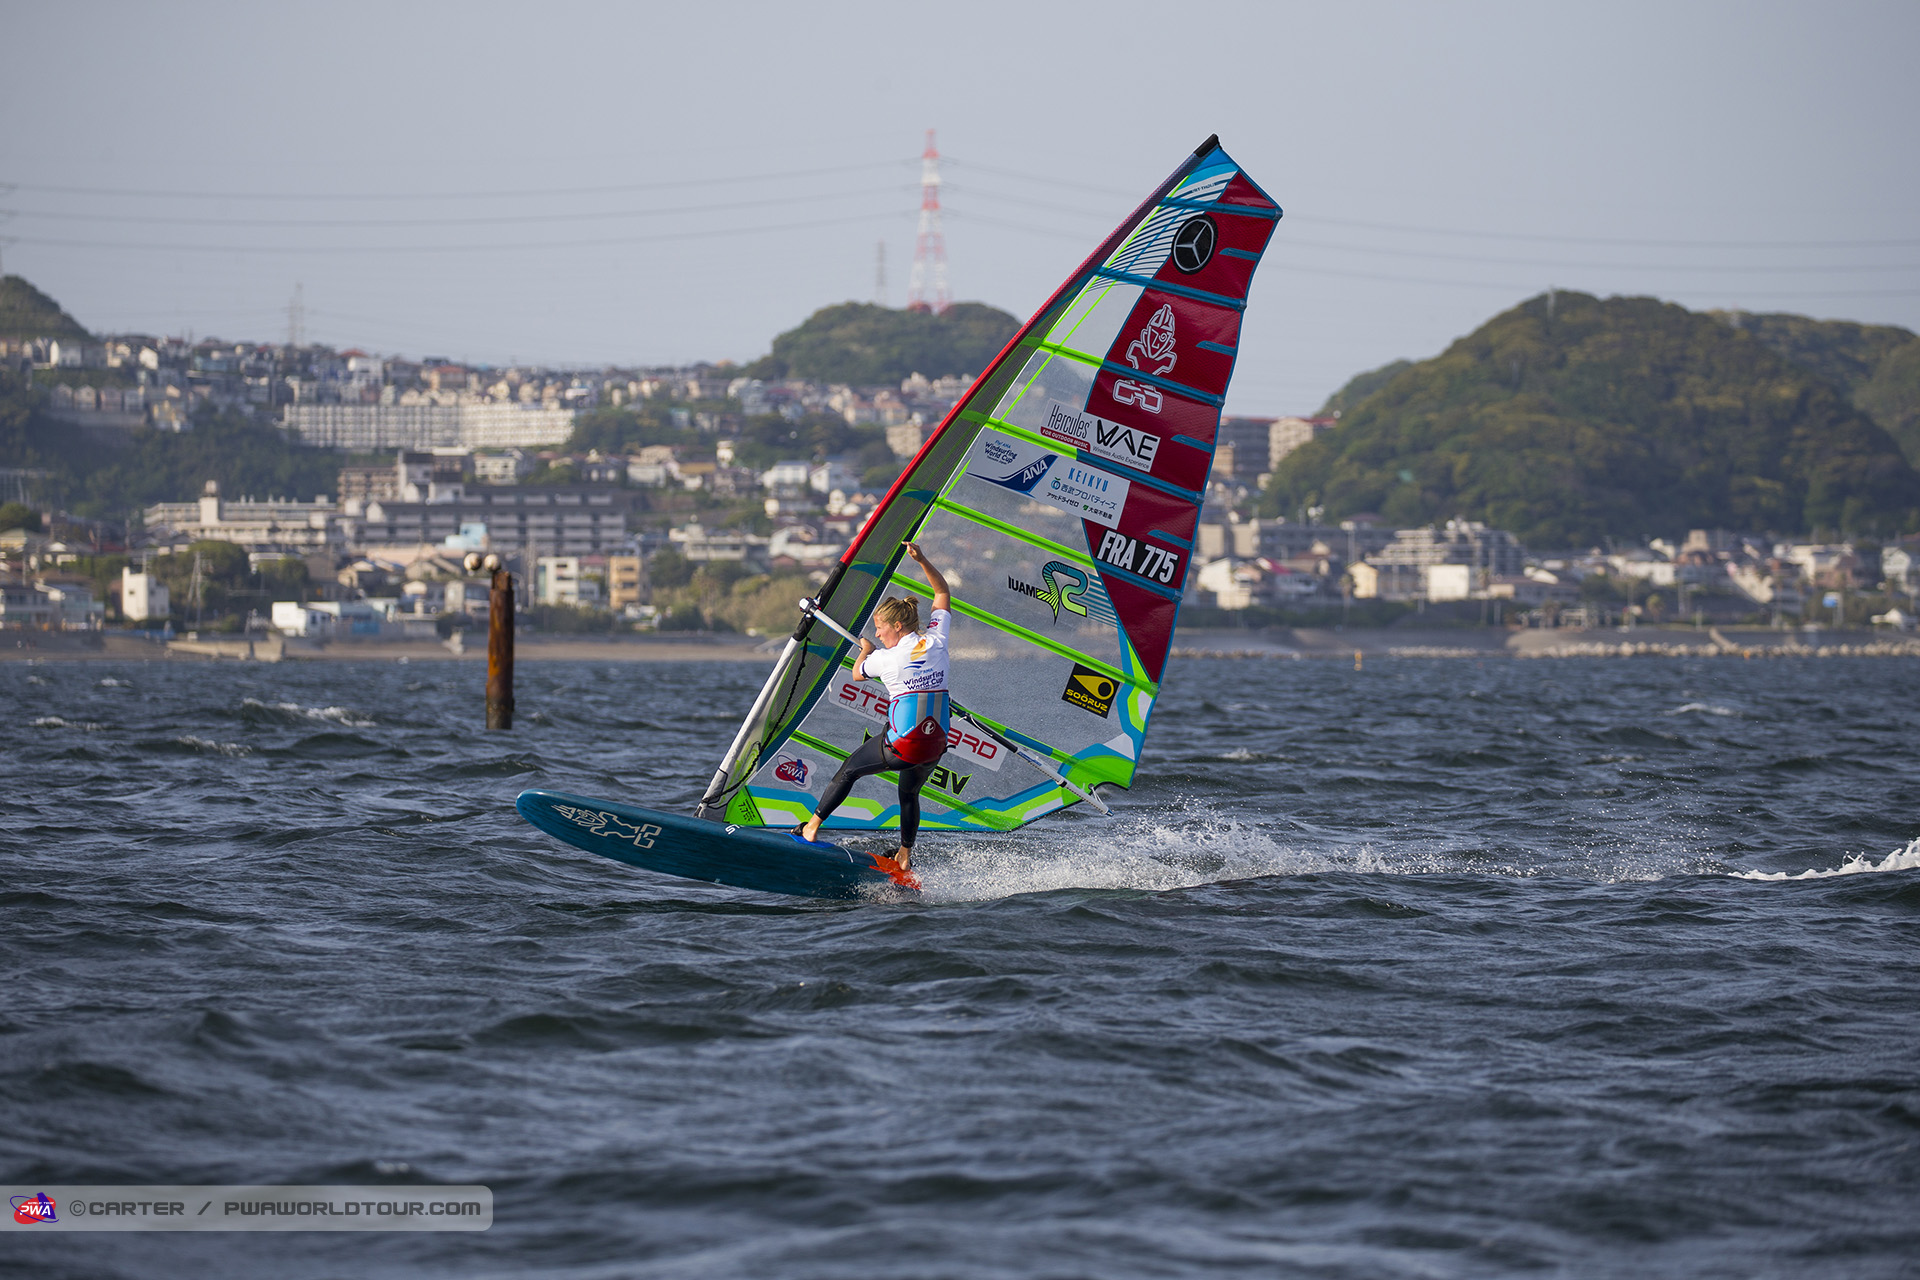 Delphine Cousin takes elimination one and the event victory (Photo: Carter/PWAworldtour)